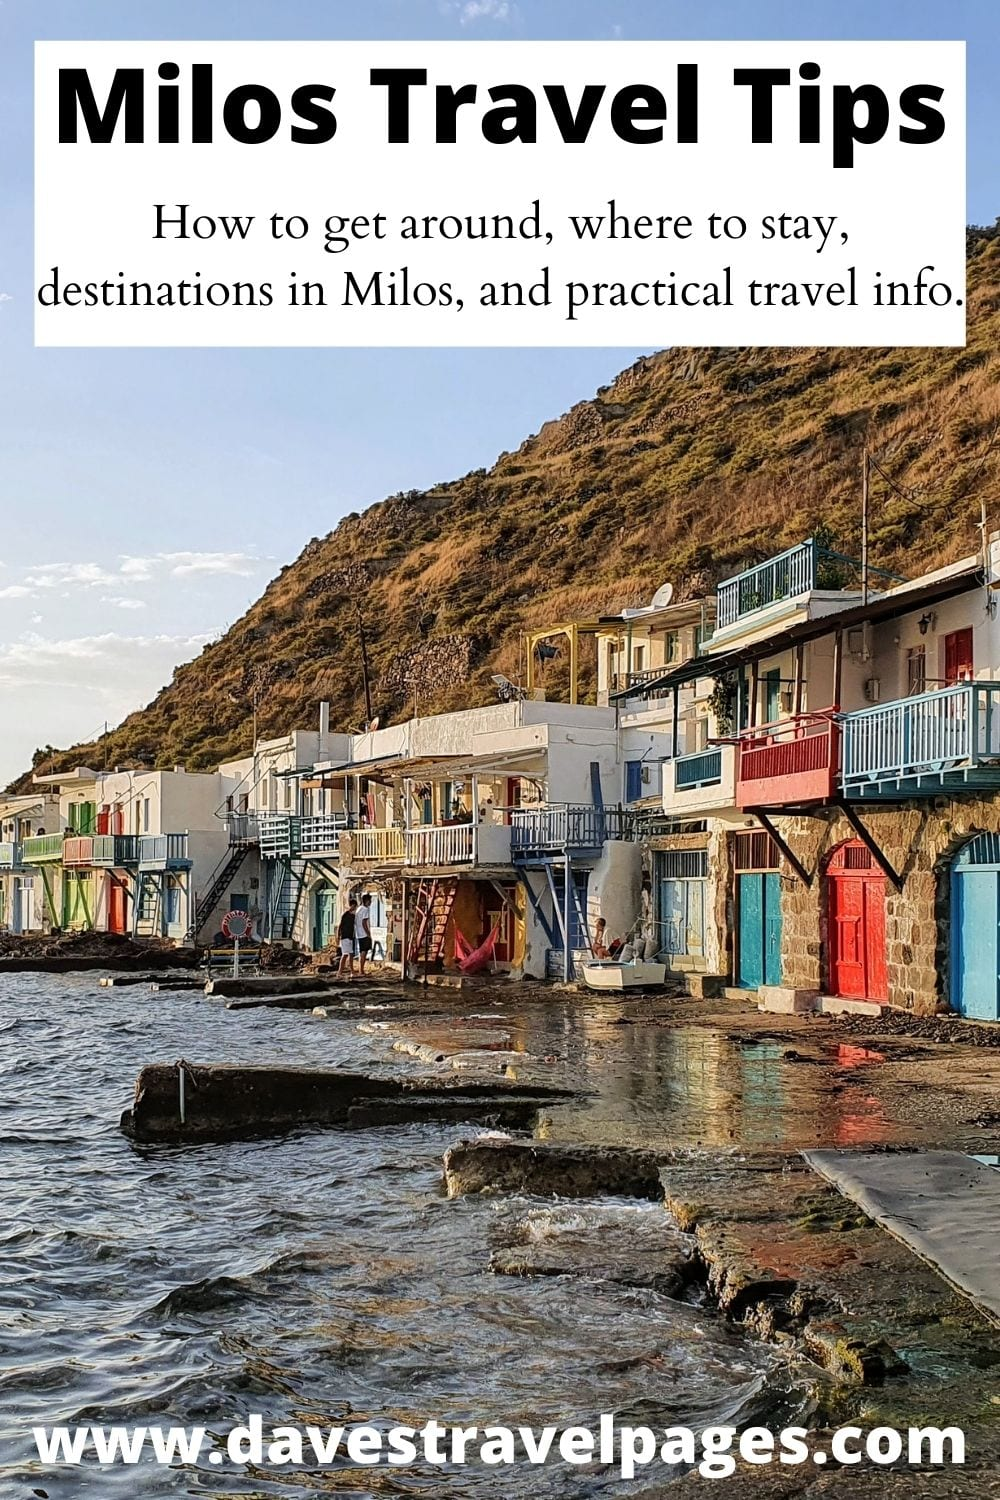 Milos travel tips and information